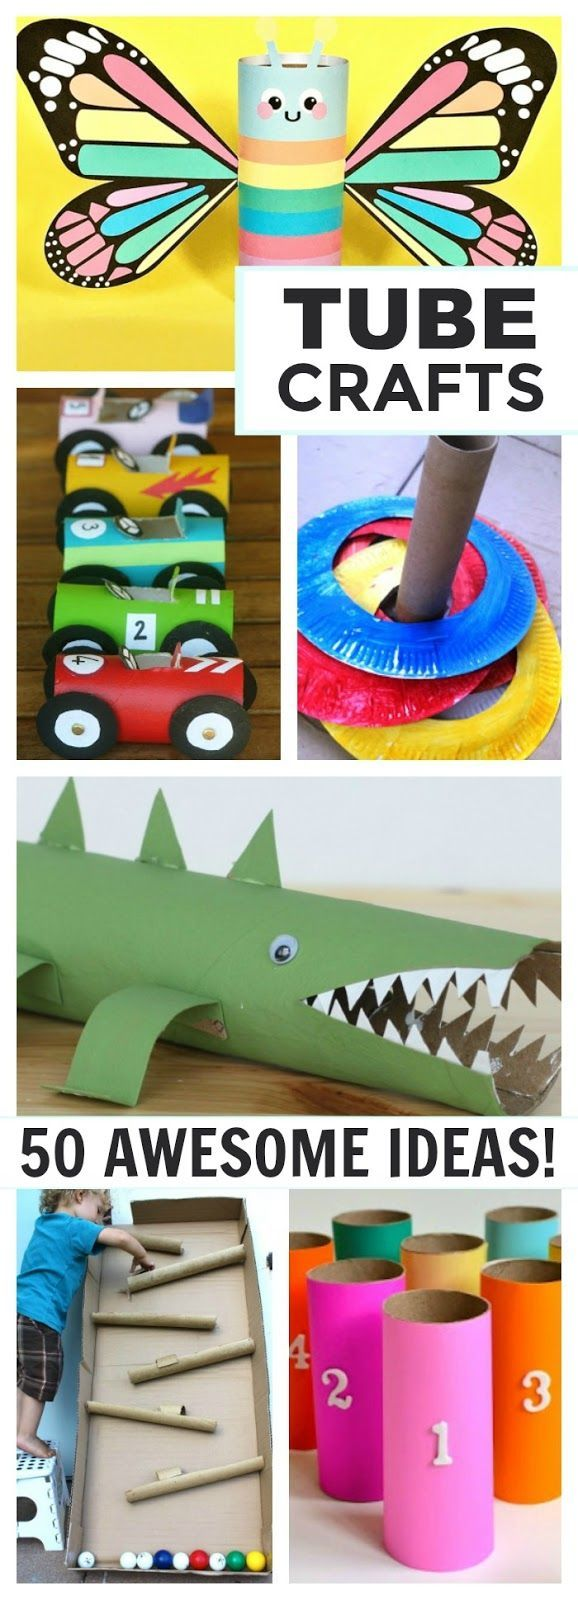 50 awesome kid creations made from empty cardboard rolls! These are SO COOL, and we always have these rolls lying around, too!